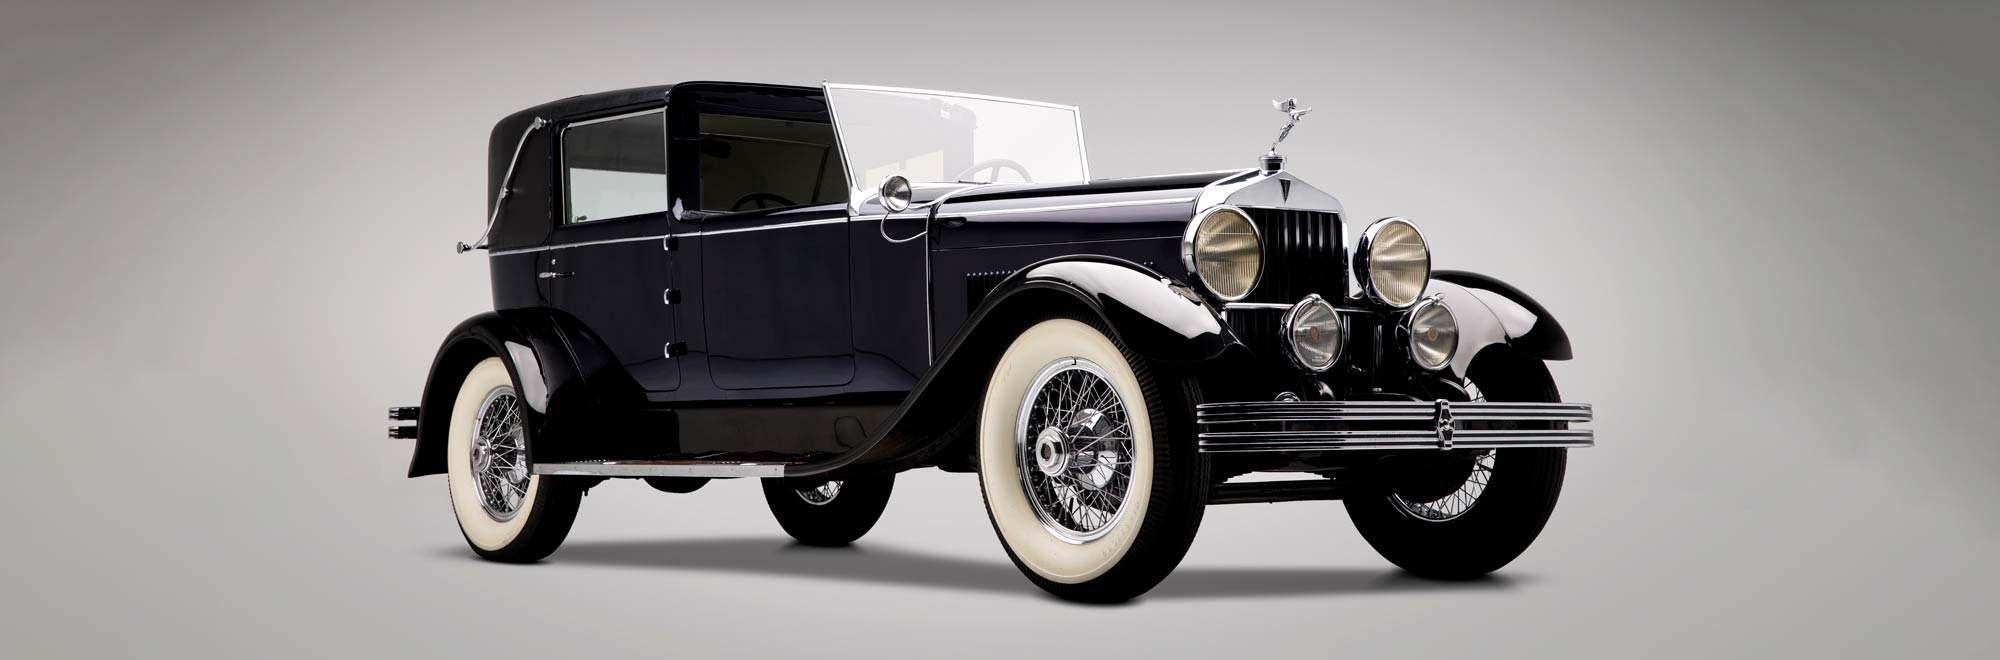 28 Hudson Series O Towncar - The JBS Collection